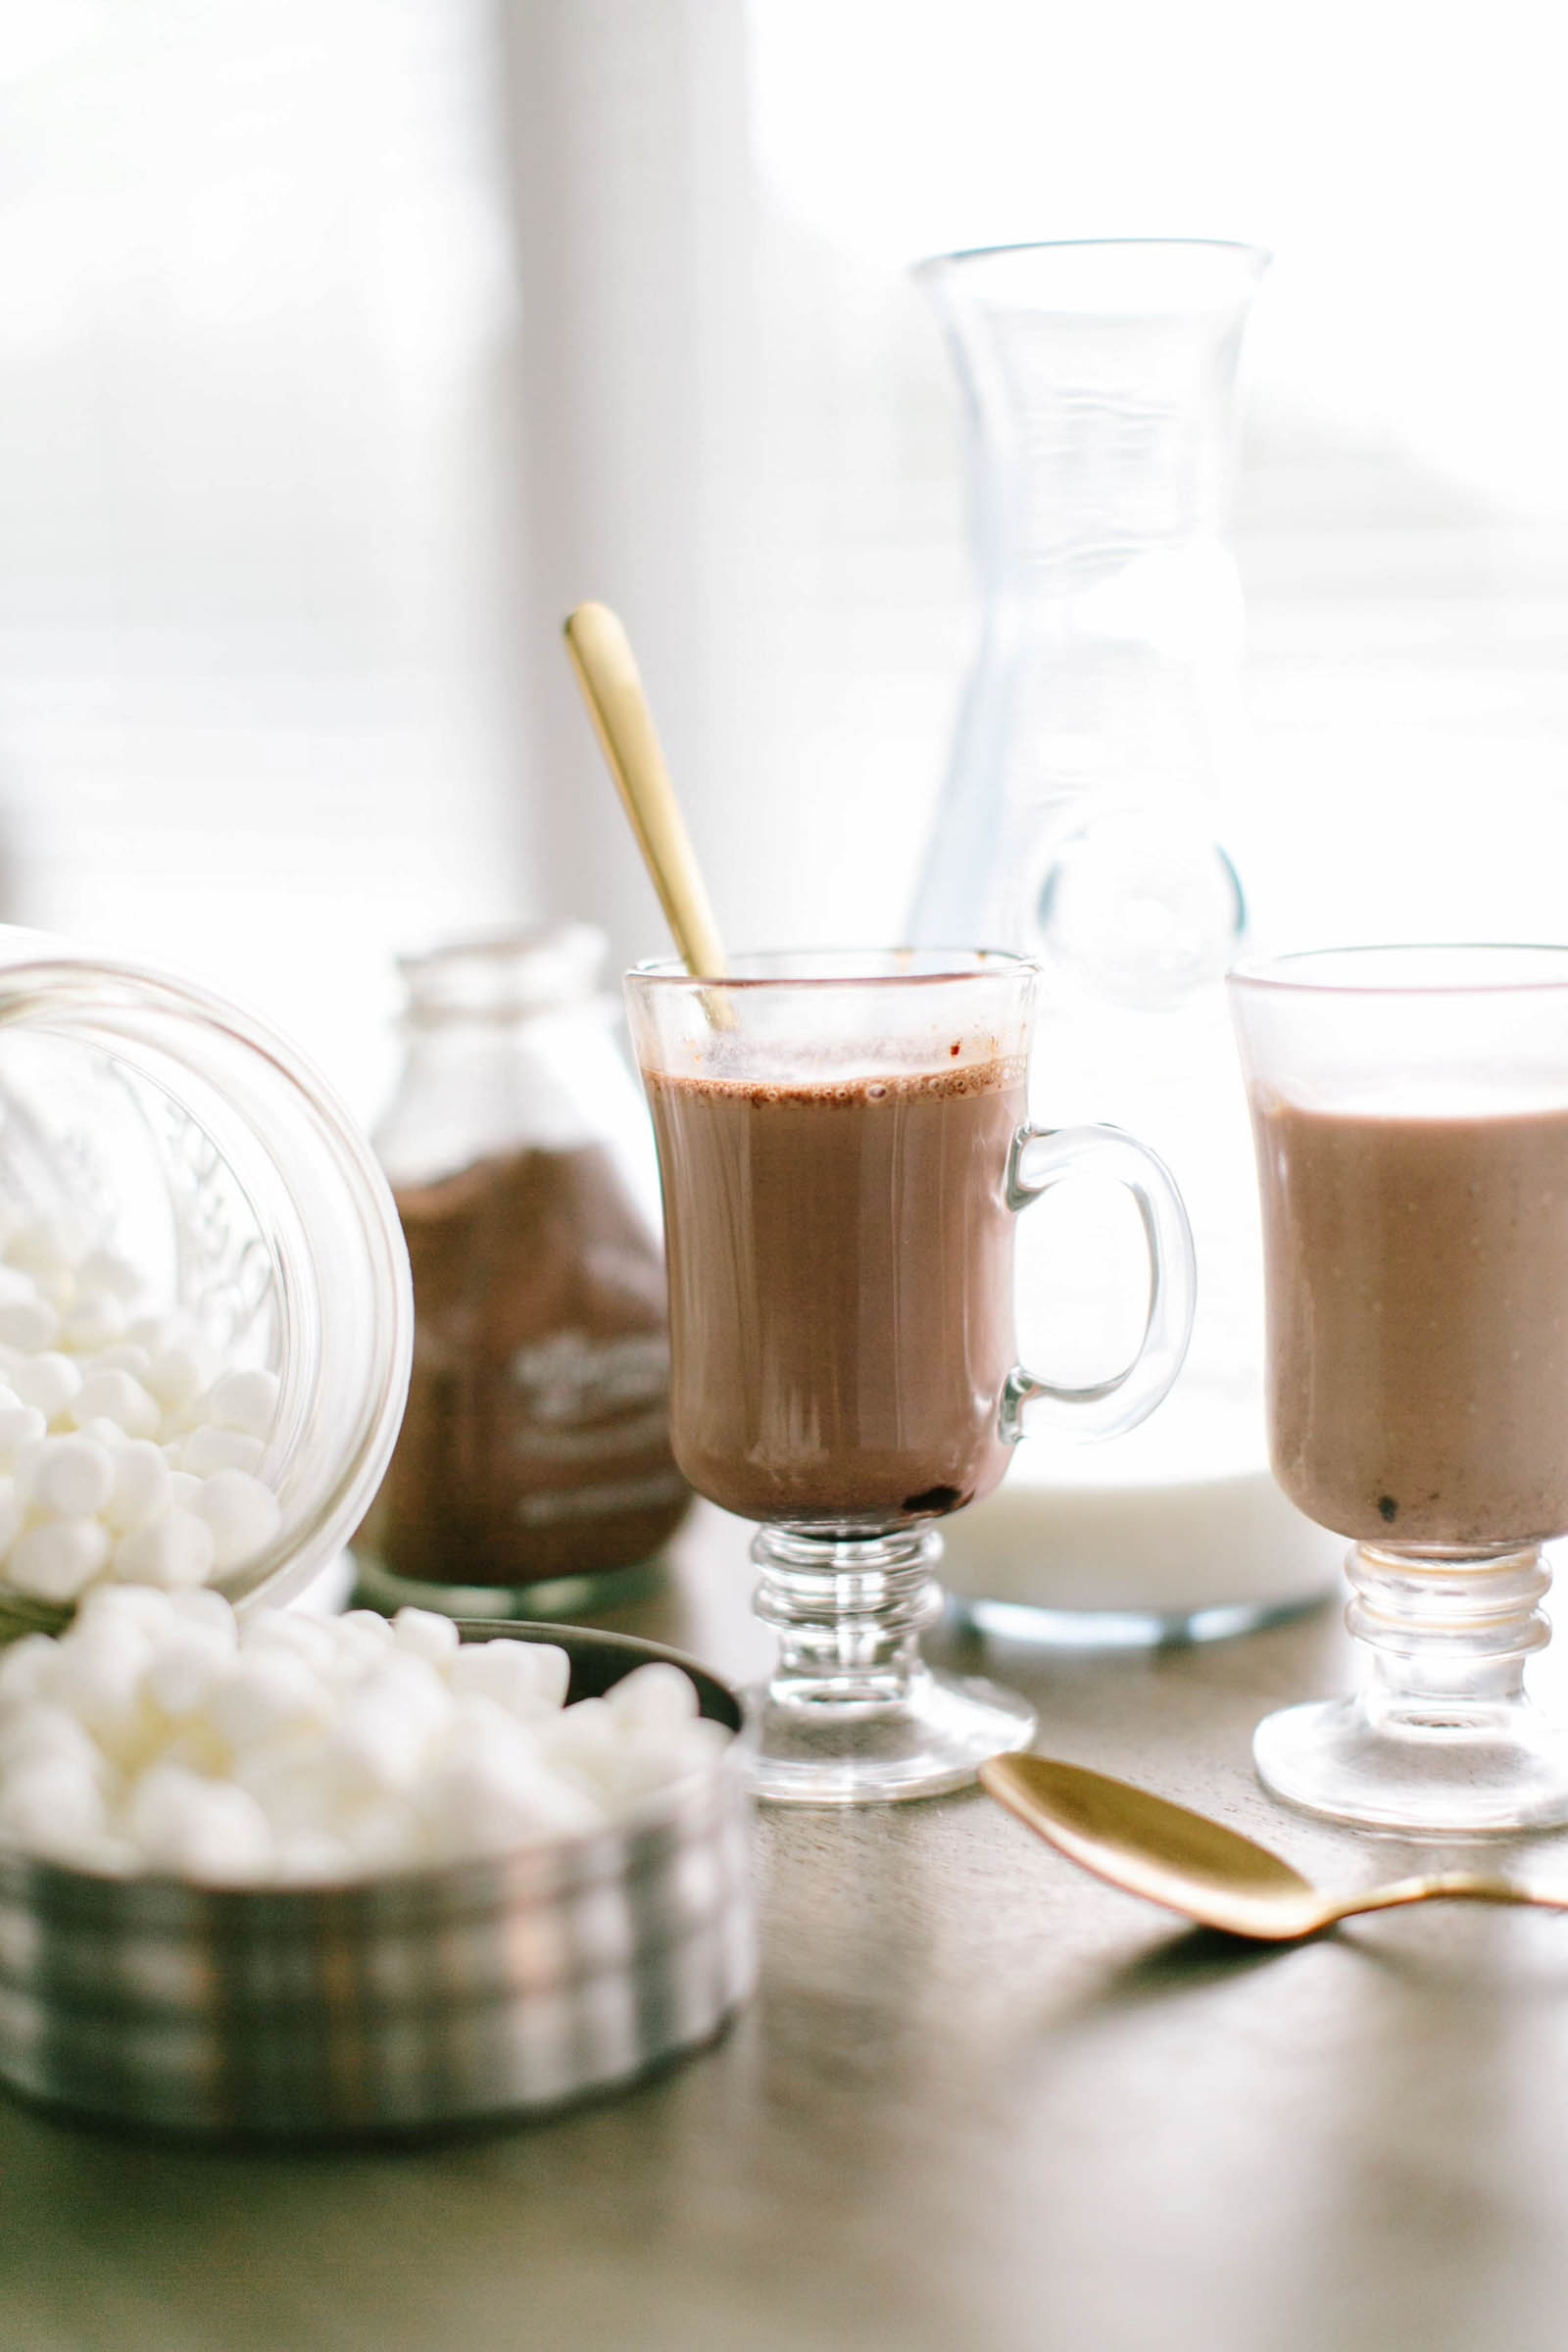 Glasses served with hot chocolate with marshmallows on the side